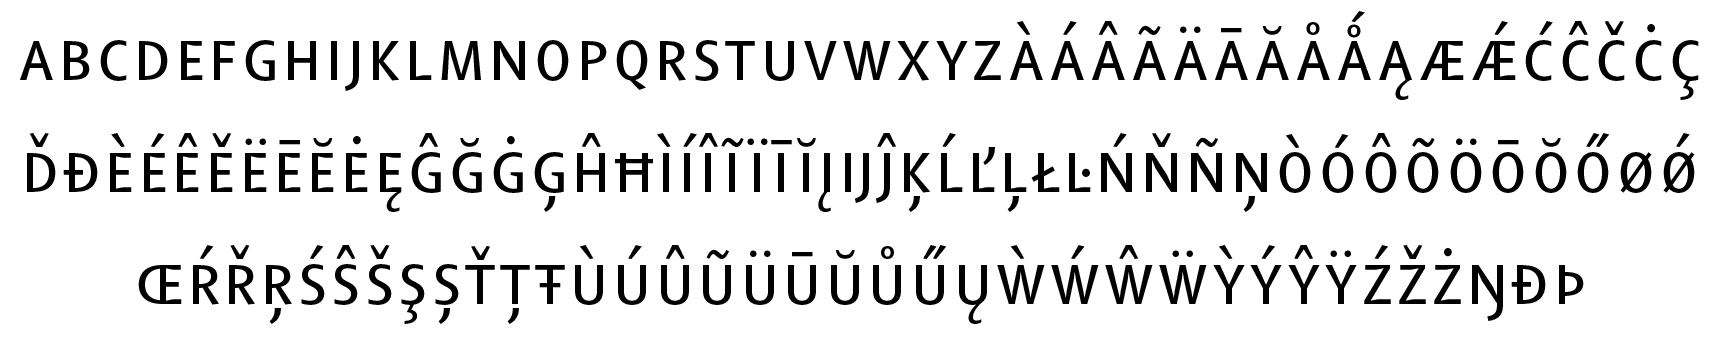 <p>Small capitals</p> glyphs